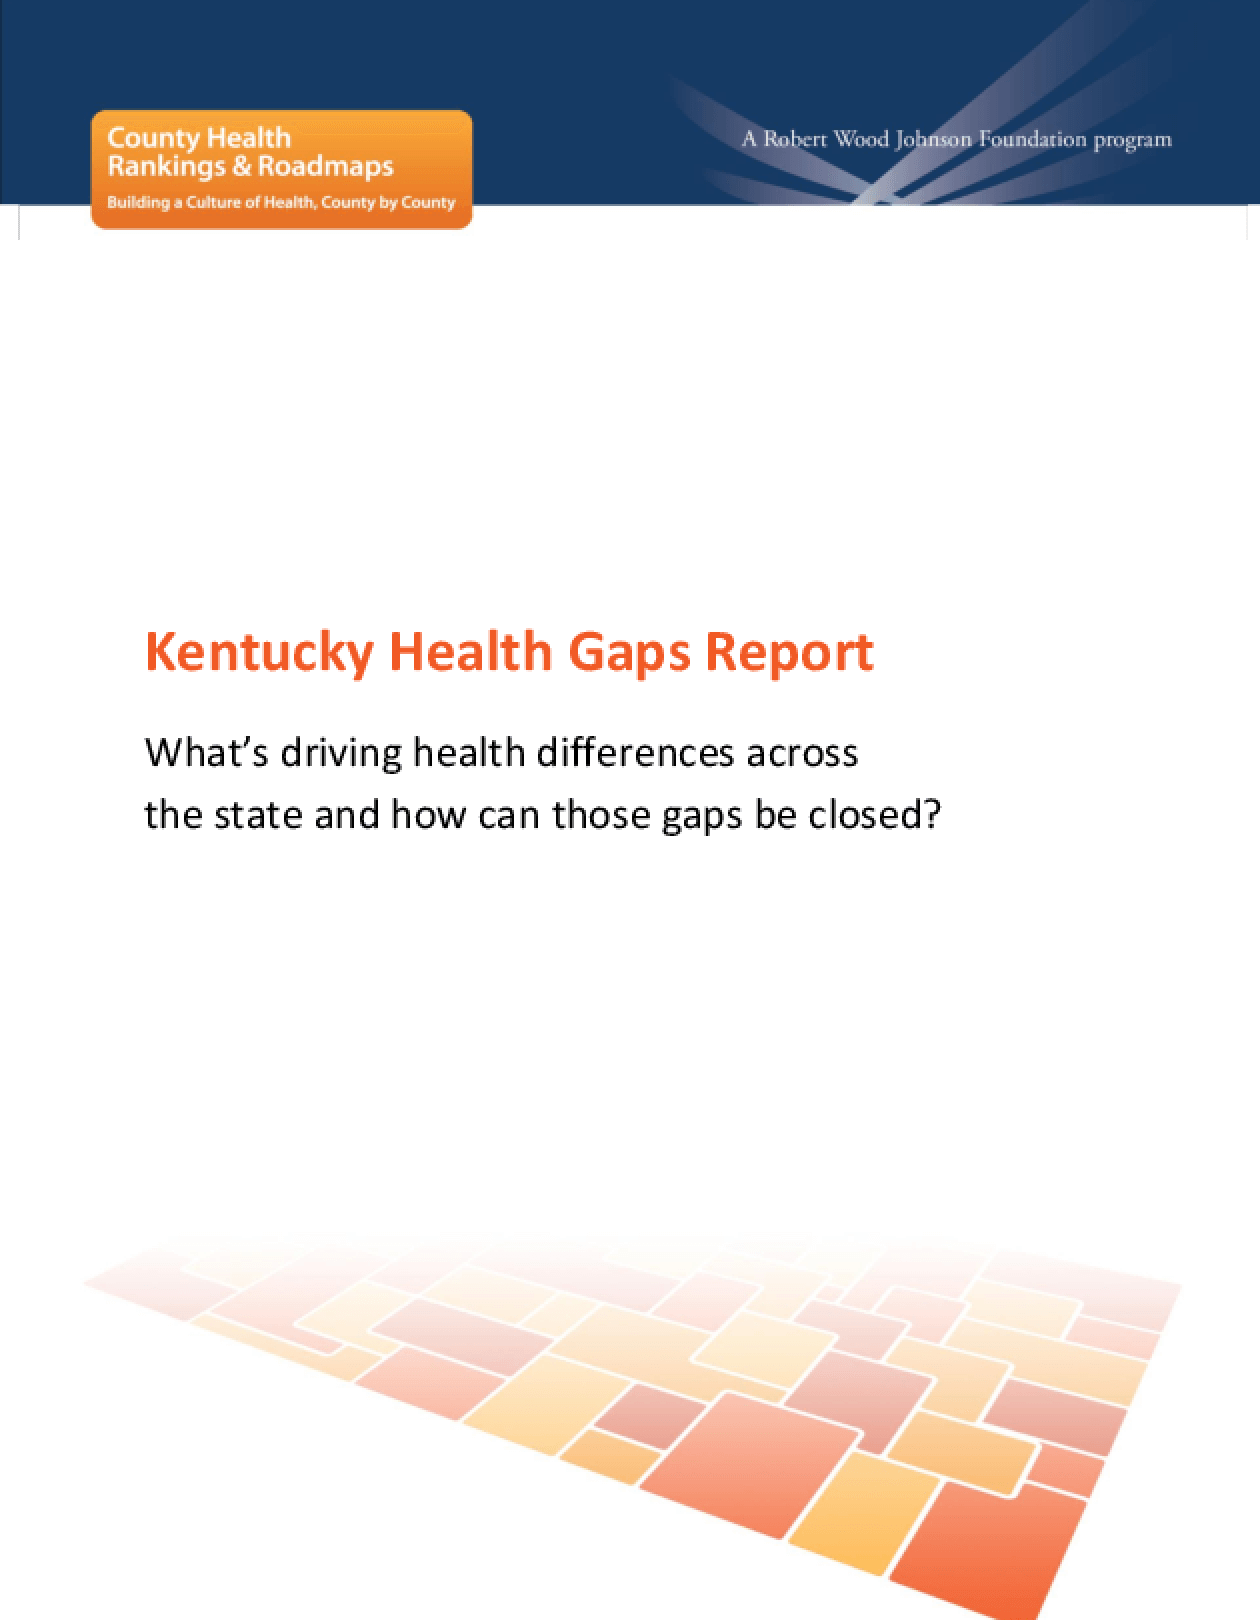 Kentucky Health Gaps Report: What's Driving Health Differences Across the State and How Can Those Gaps Be Closed?